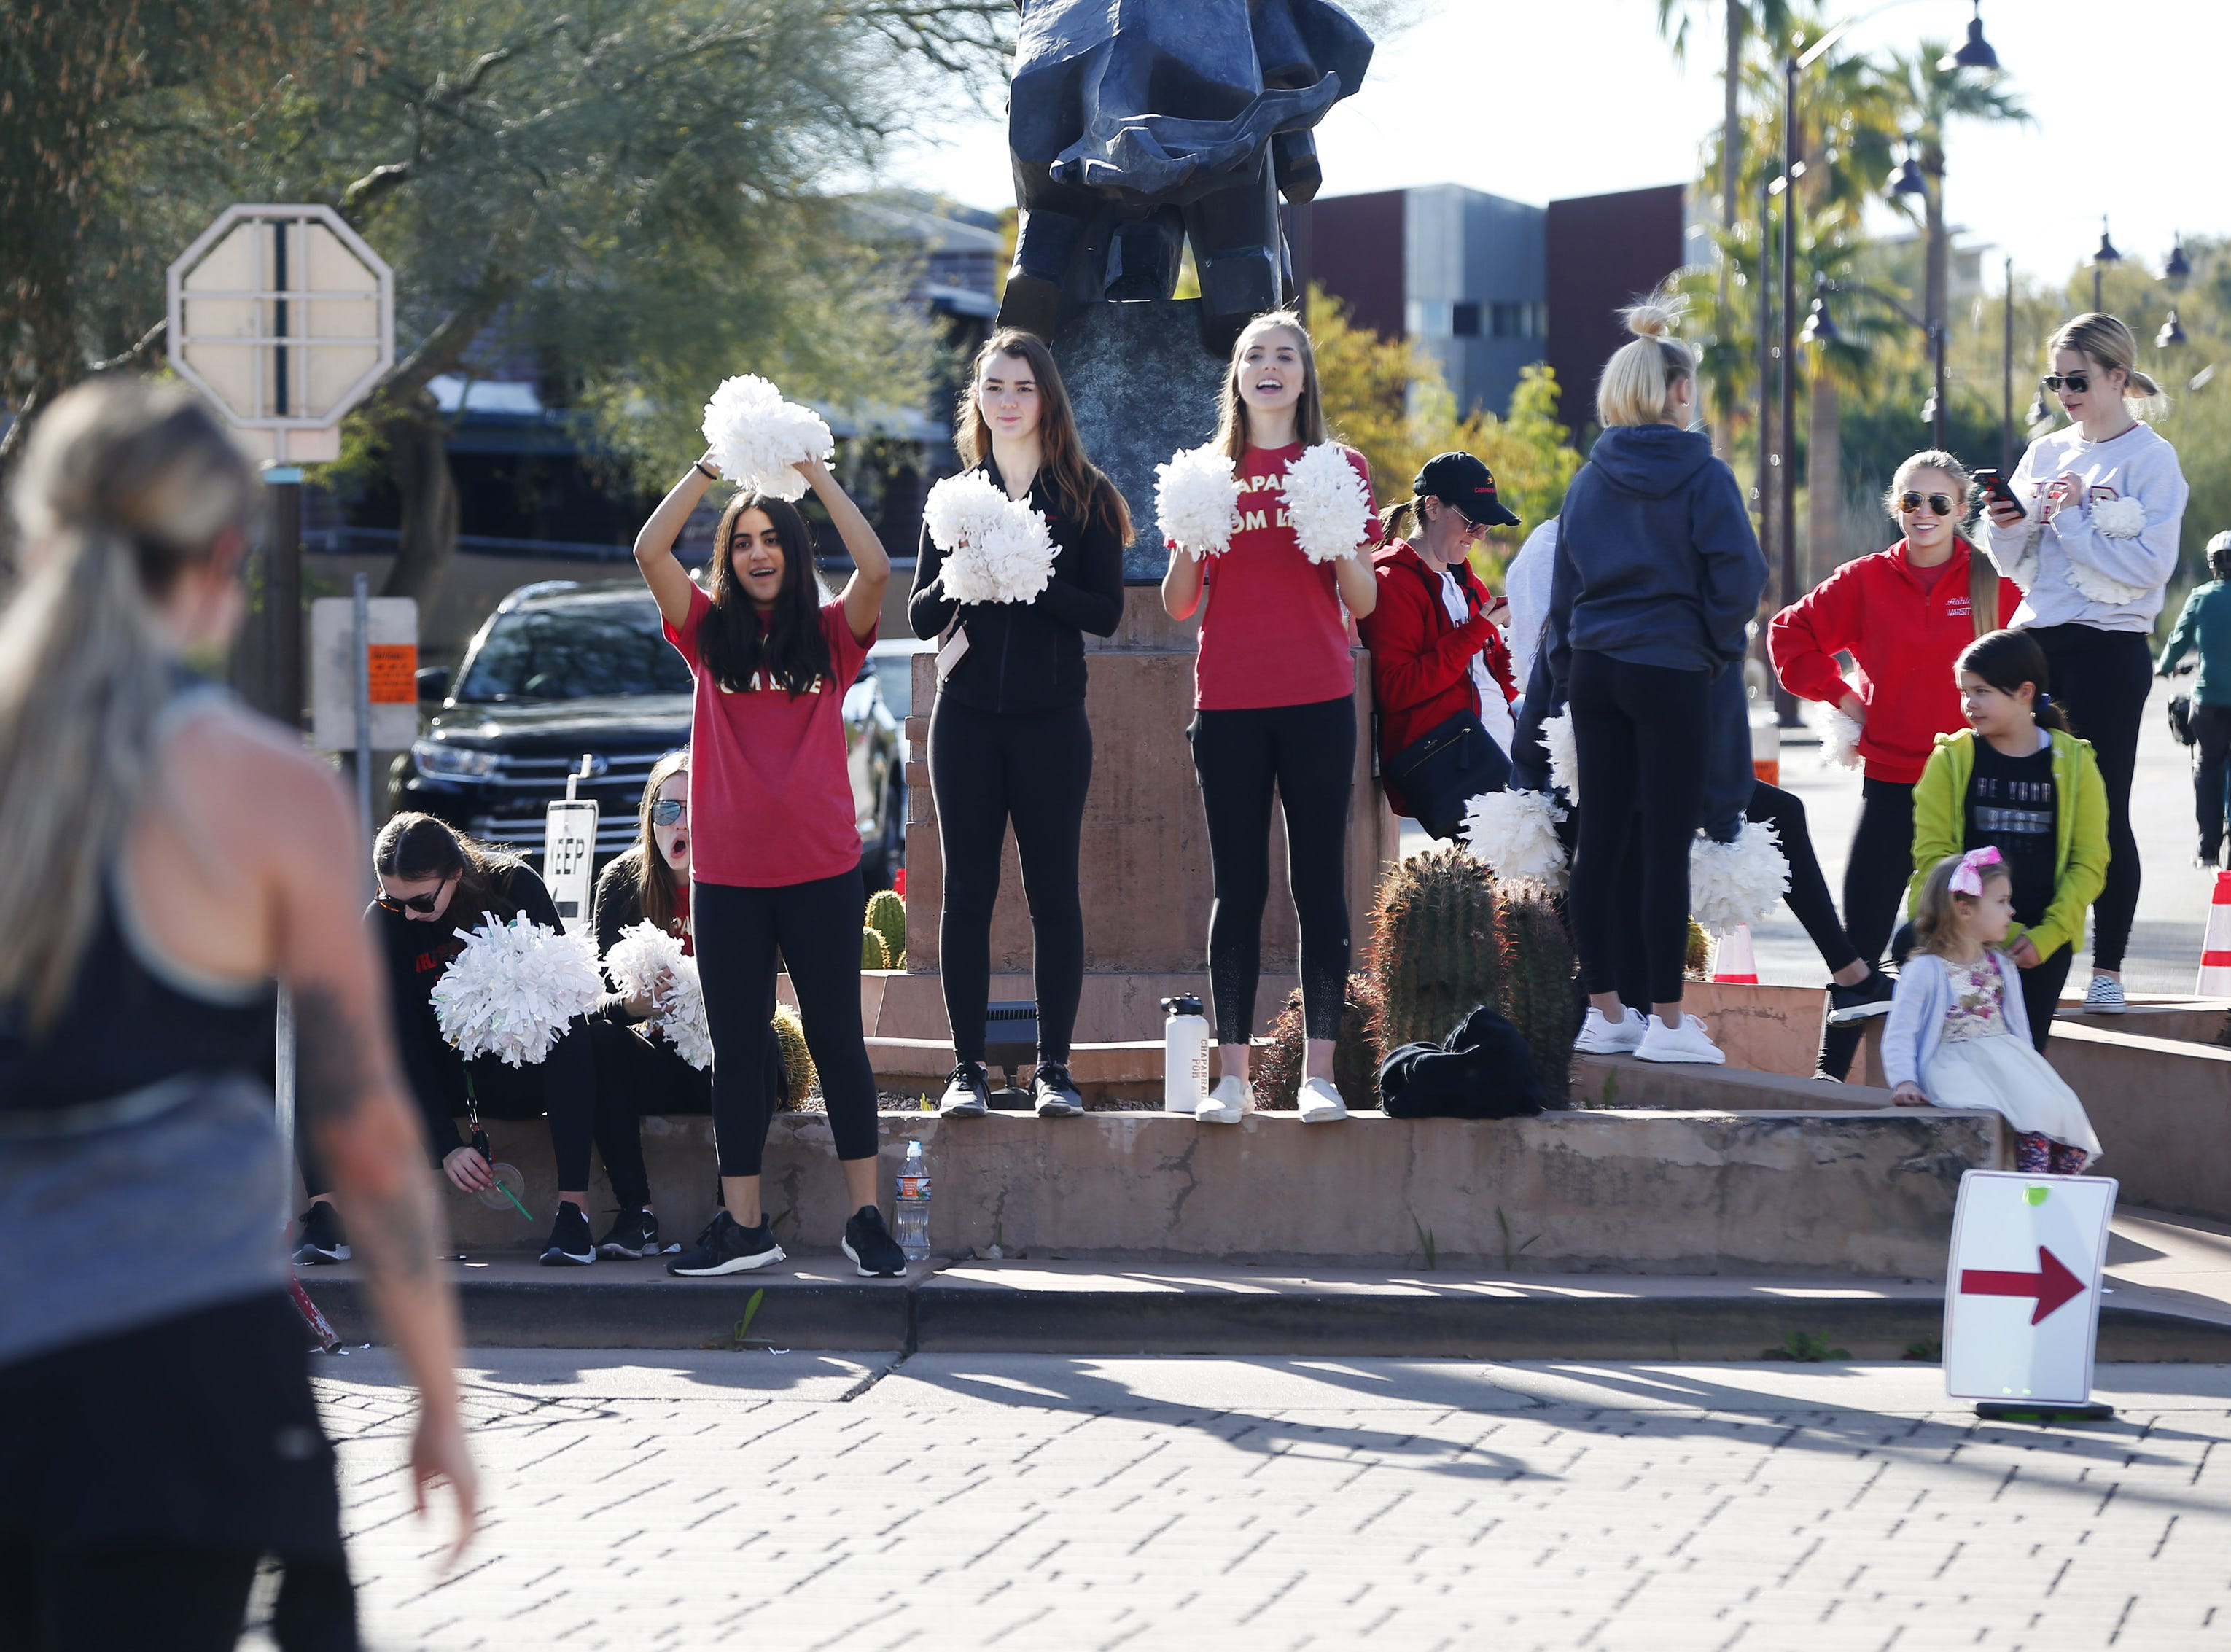 Chaparral High students cheer for runners on N. Marshall Way during the Rock 'n' Roll Marathon in Scottsdale Jan. 20, 2019.